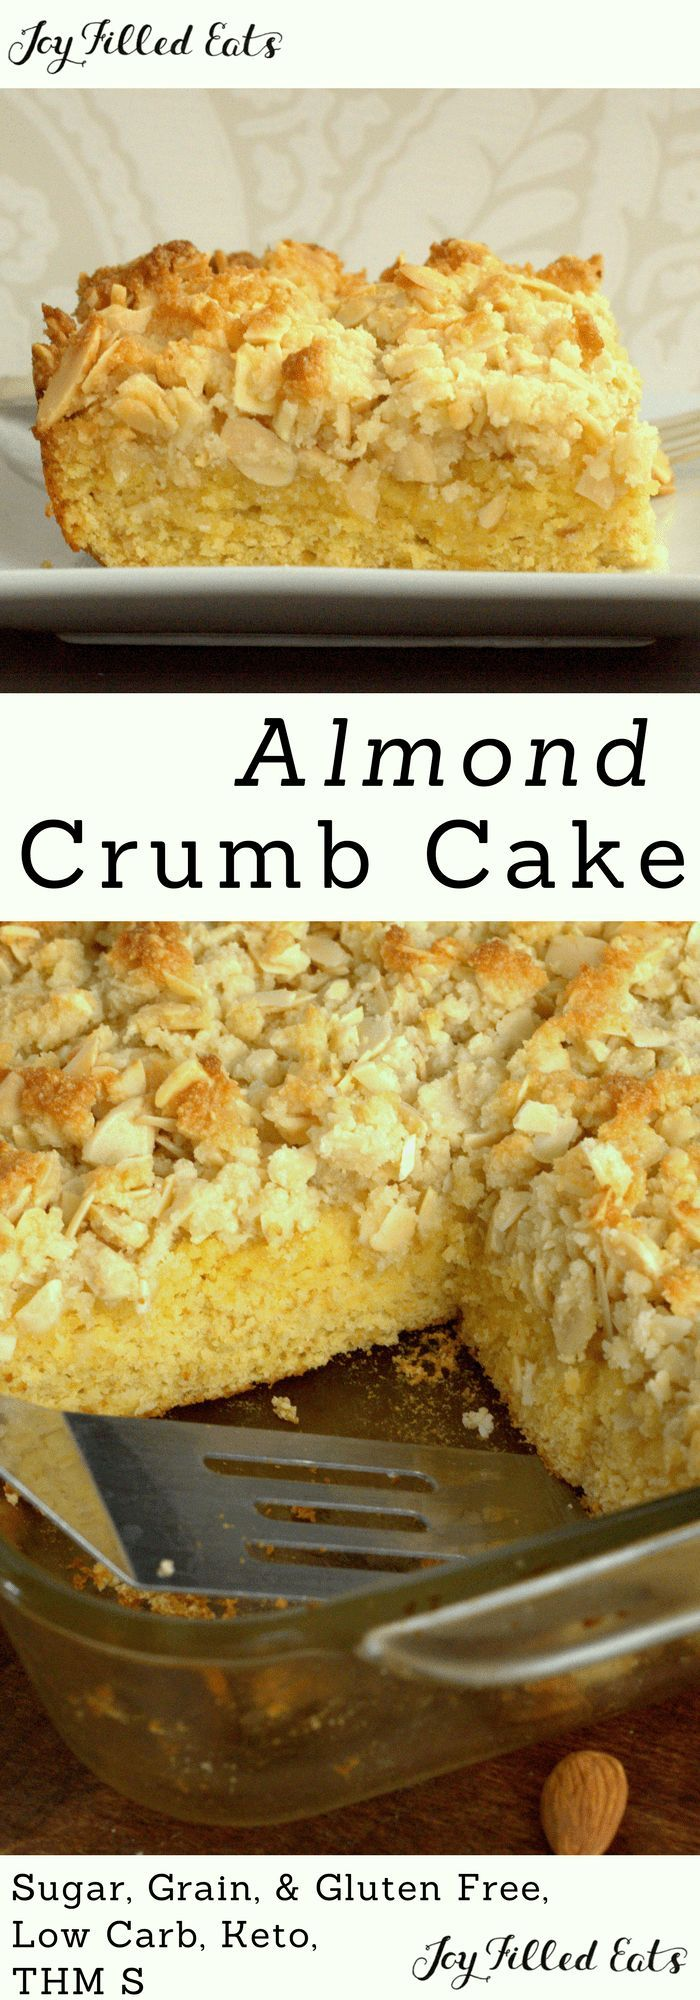 Almond Crumb Cake - Sugar Free, Low Carb, Gluten Free, Grain Free, THM S, Keto - My Almond Crumb Cake Recipe is perfect for breakfast or dessert.  It has the crunch of toasted sliced almonds & the perfect ratio of crumbs to cake.